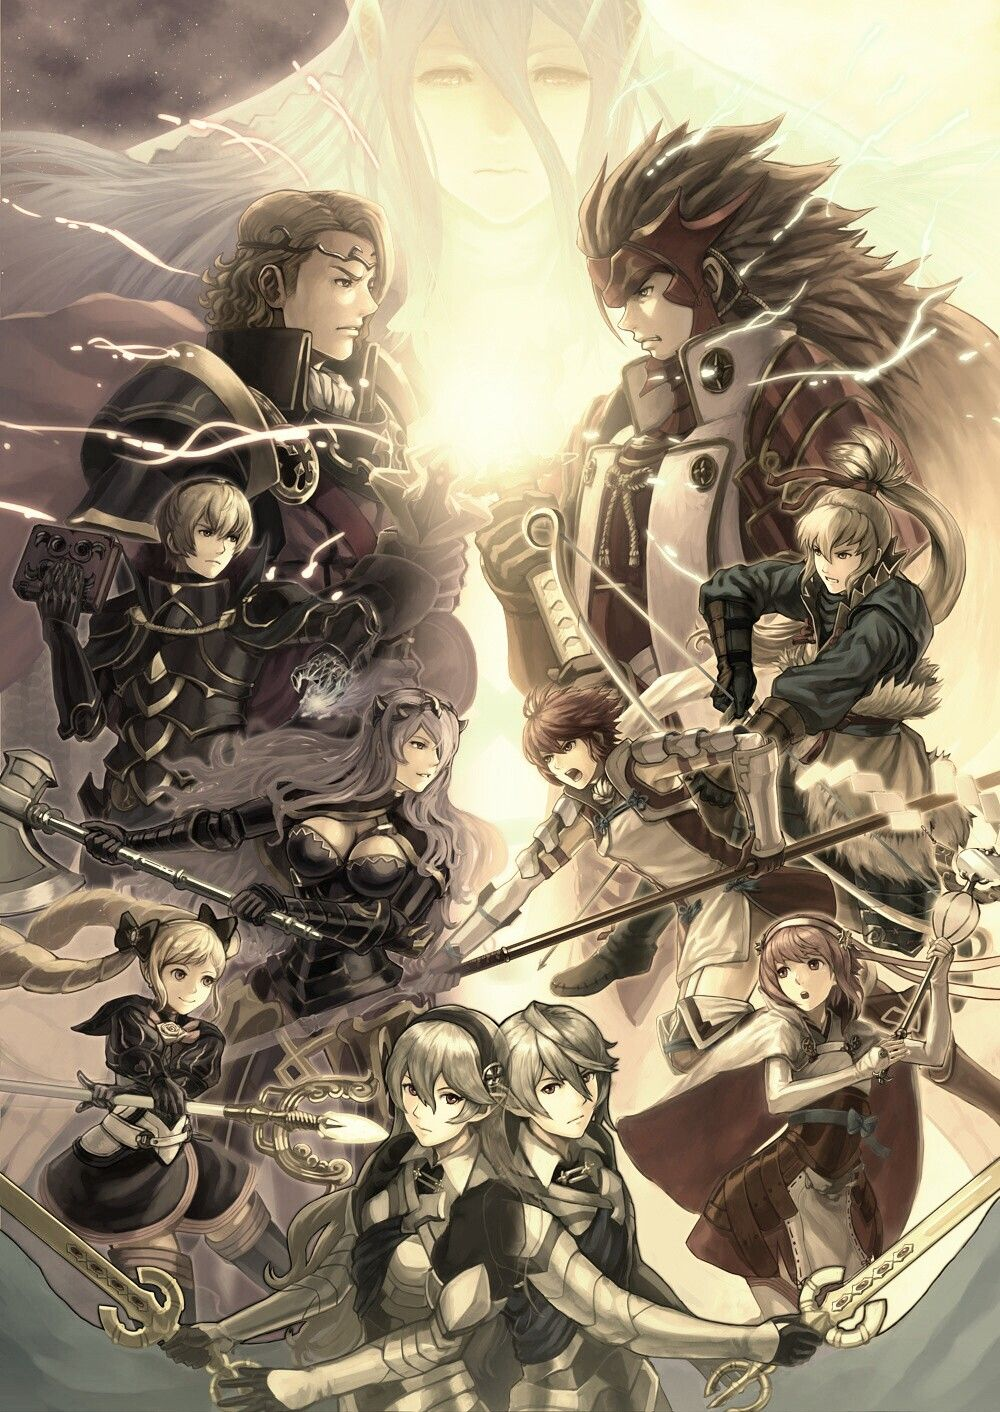 Fire Emblem Fates Wallpaper For Phone Fire Emblem Fates Fire